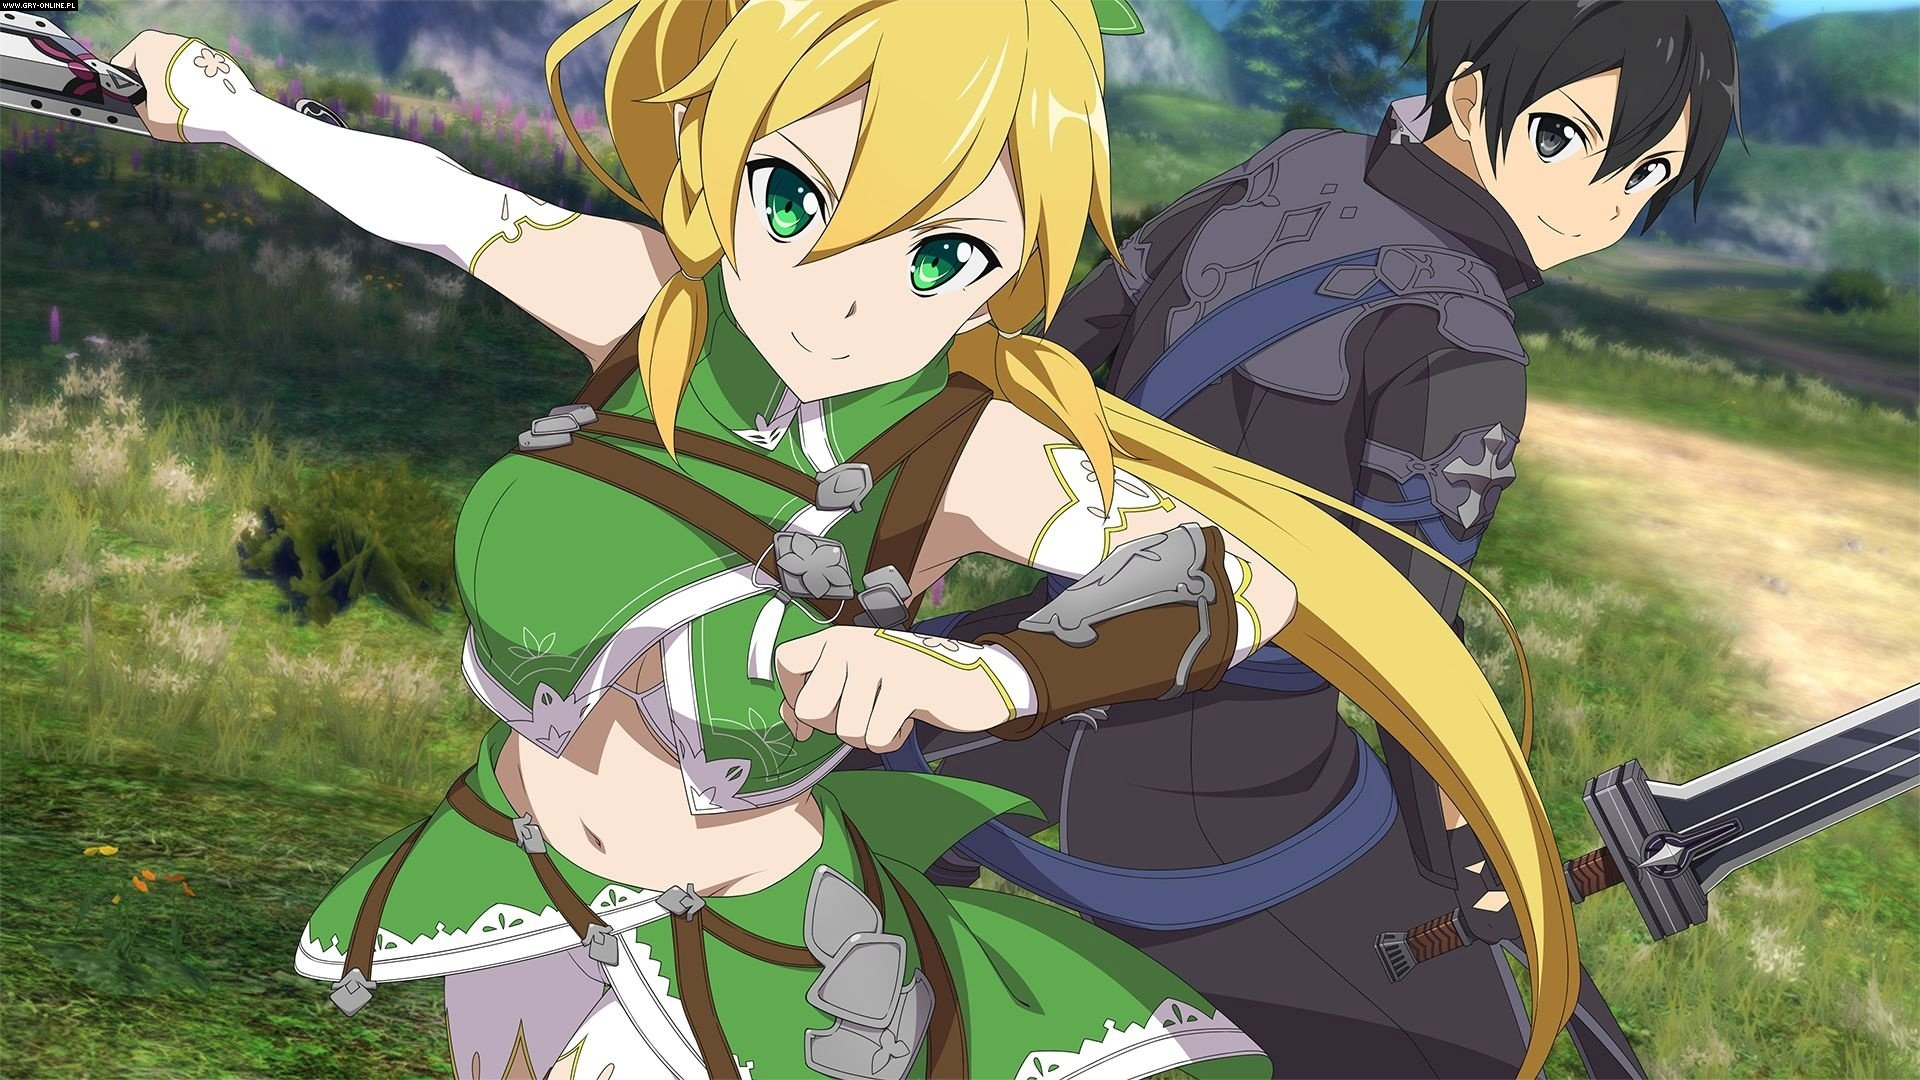 Gallery Sword Art Online Hollow Realization | secondtofirst com